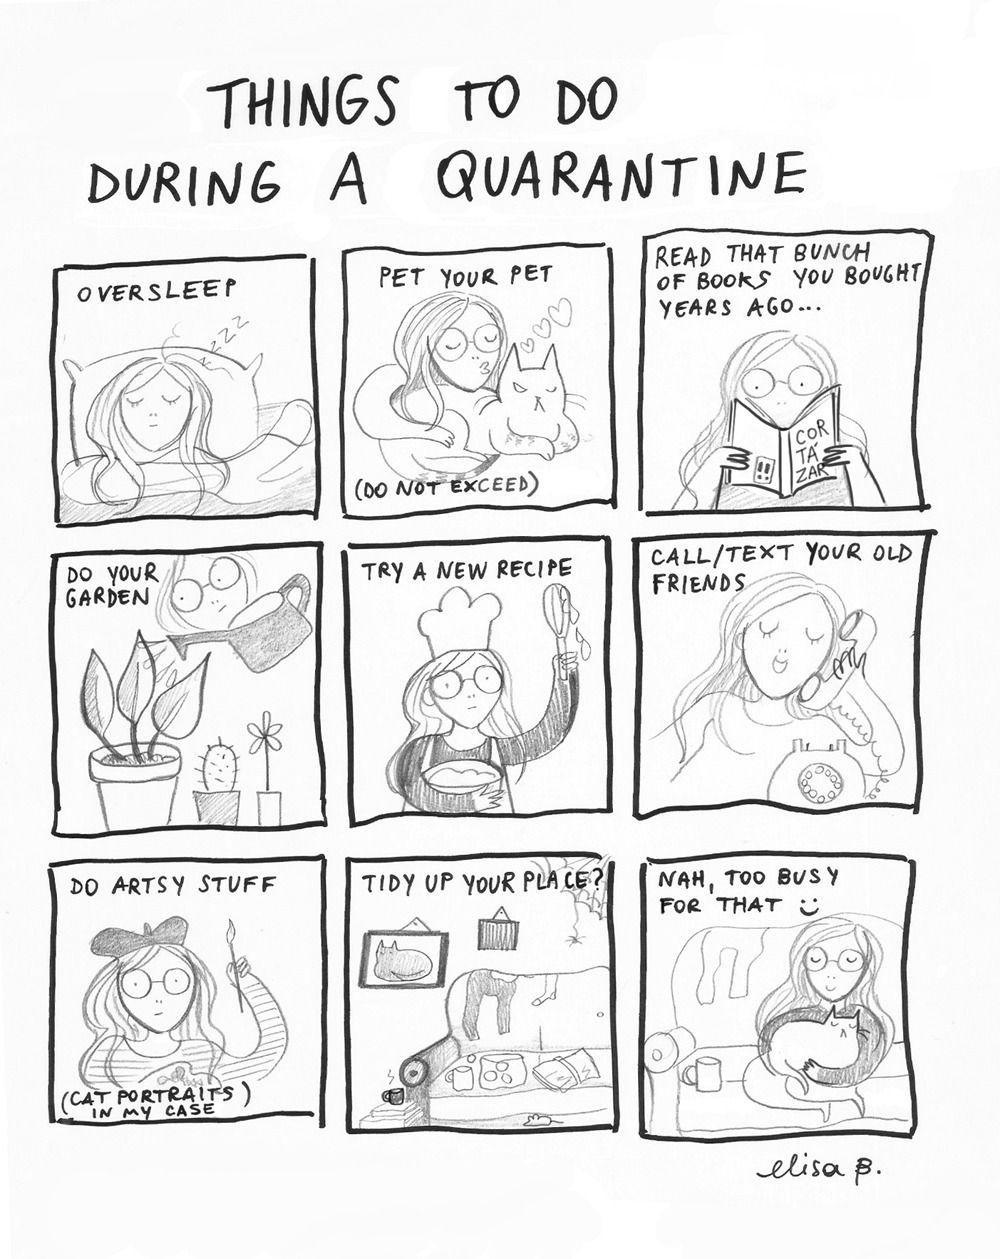 Pin on Things To Do During Quarantine